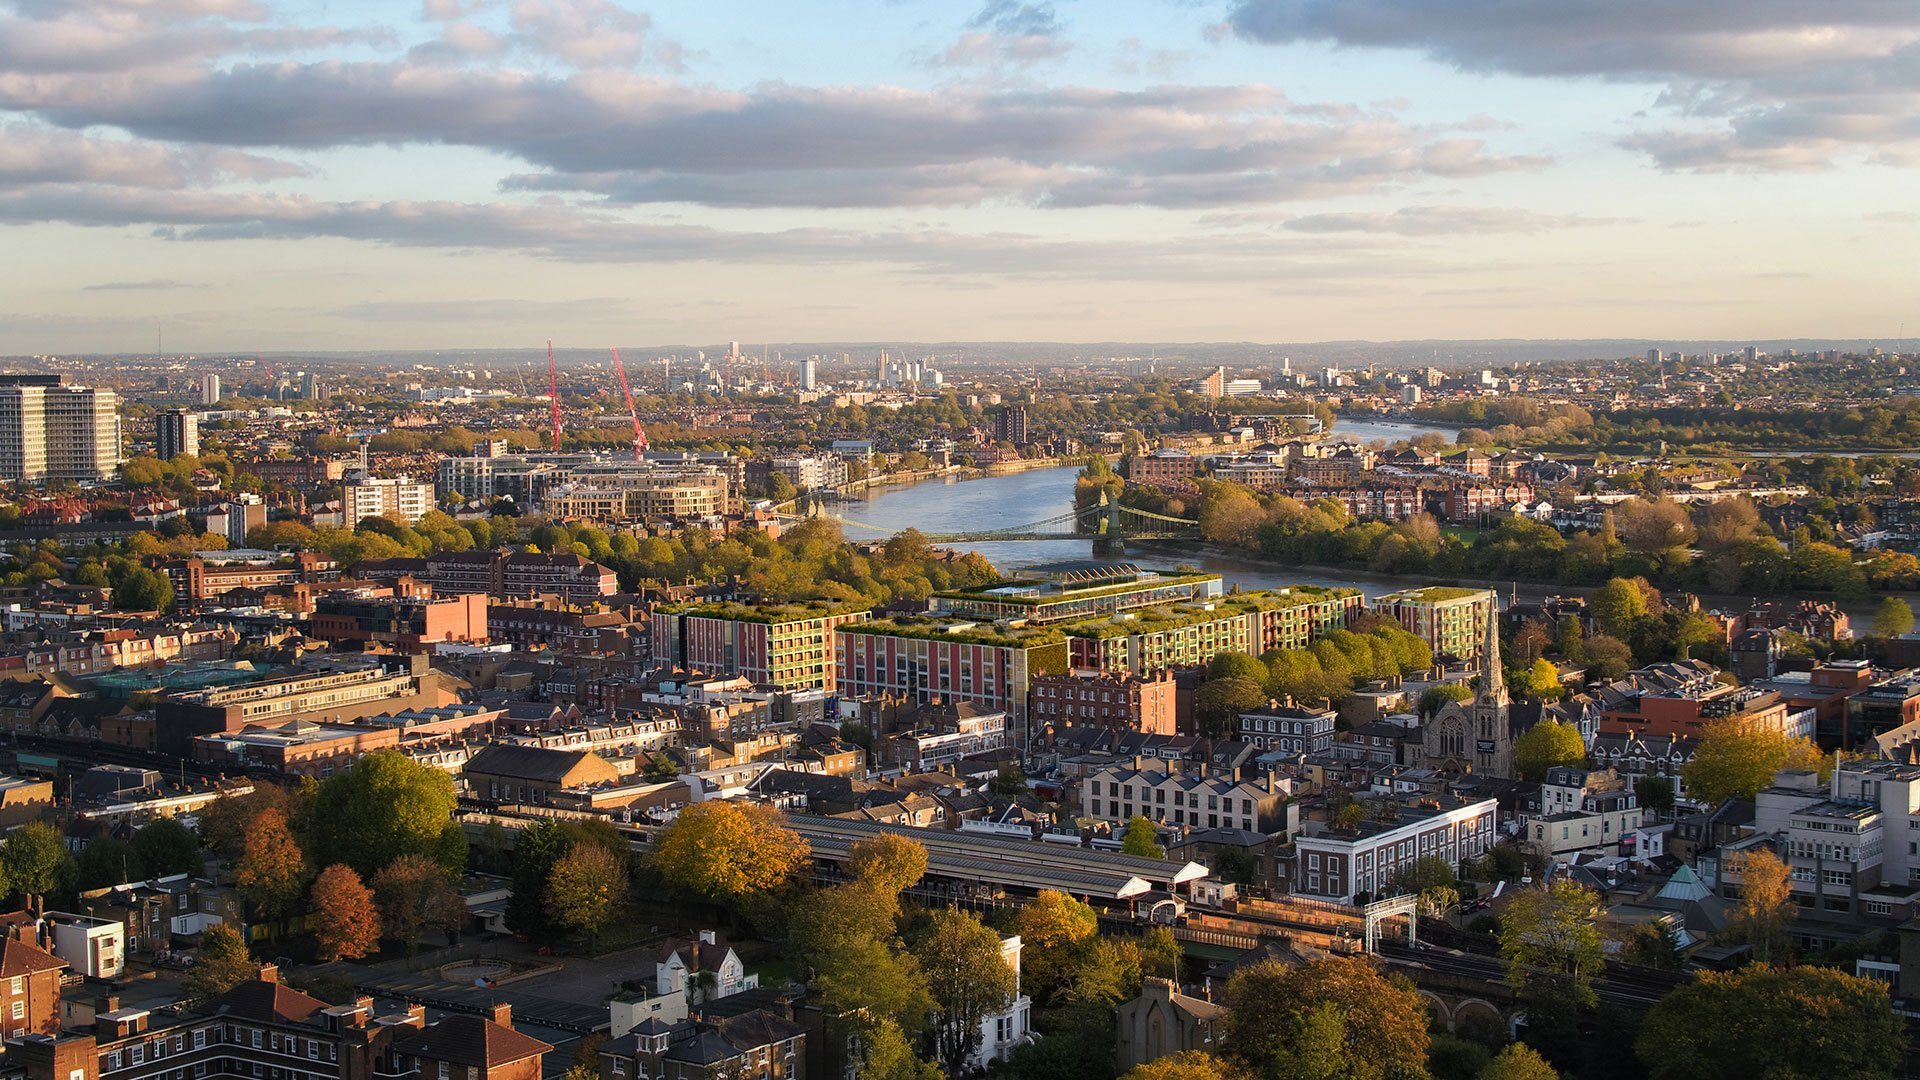 Aerial photography Hammersmith town council 3D CGI Render